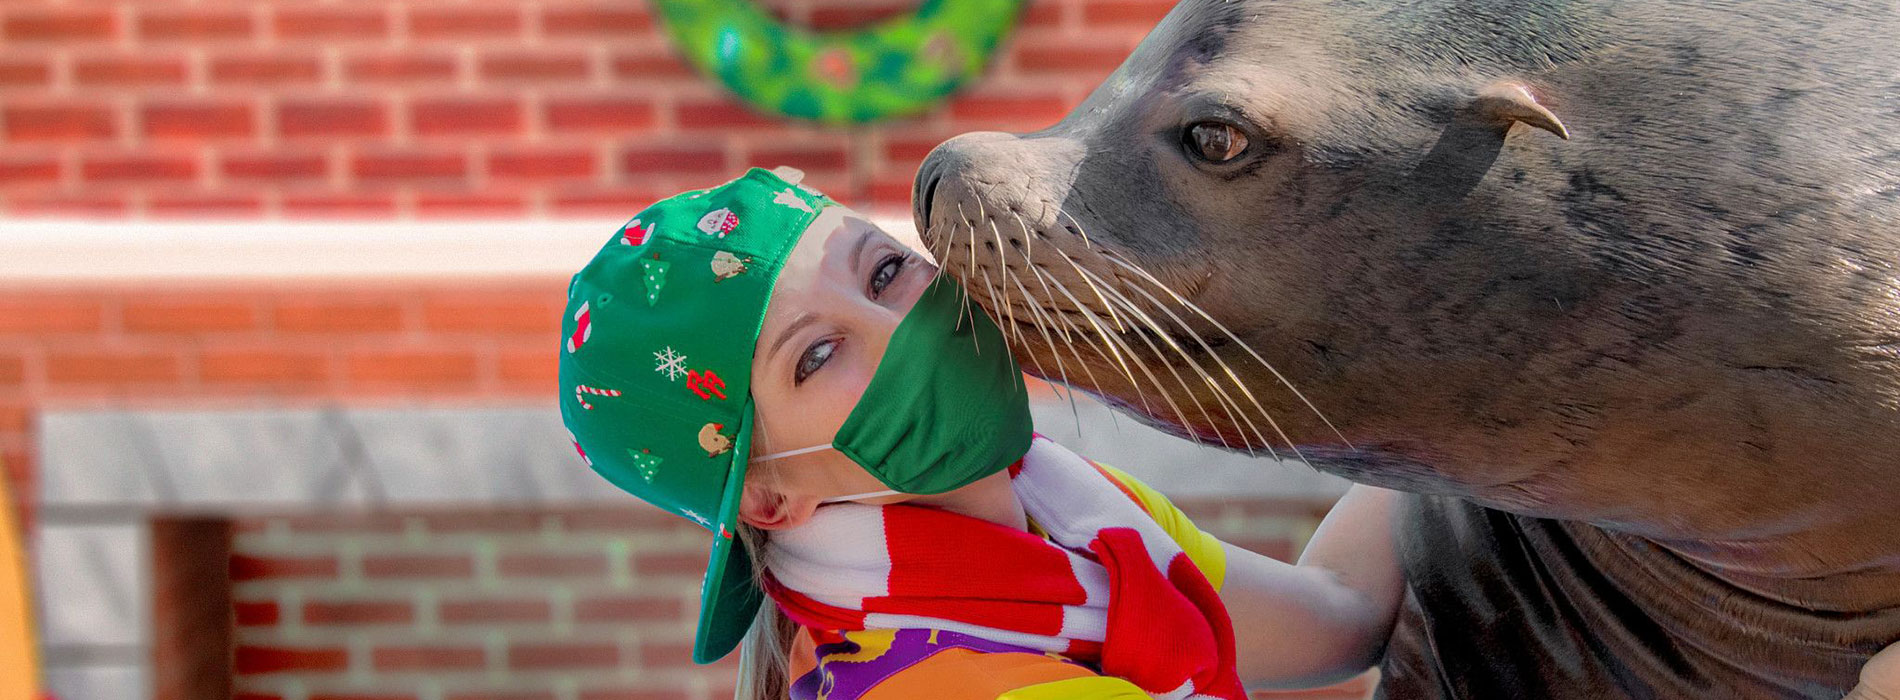 Christmas Shows Orlando 2020 Sea Lion High: The Christmas Special | SeaWorld Orlando